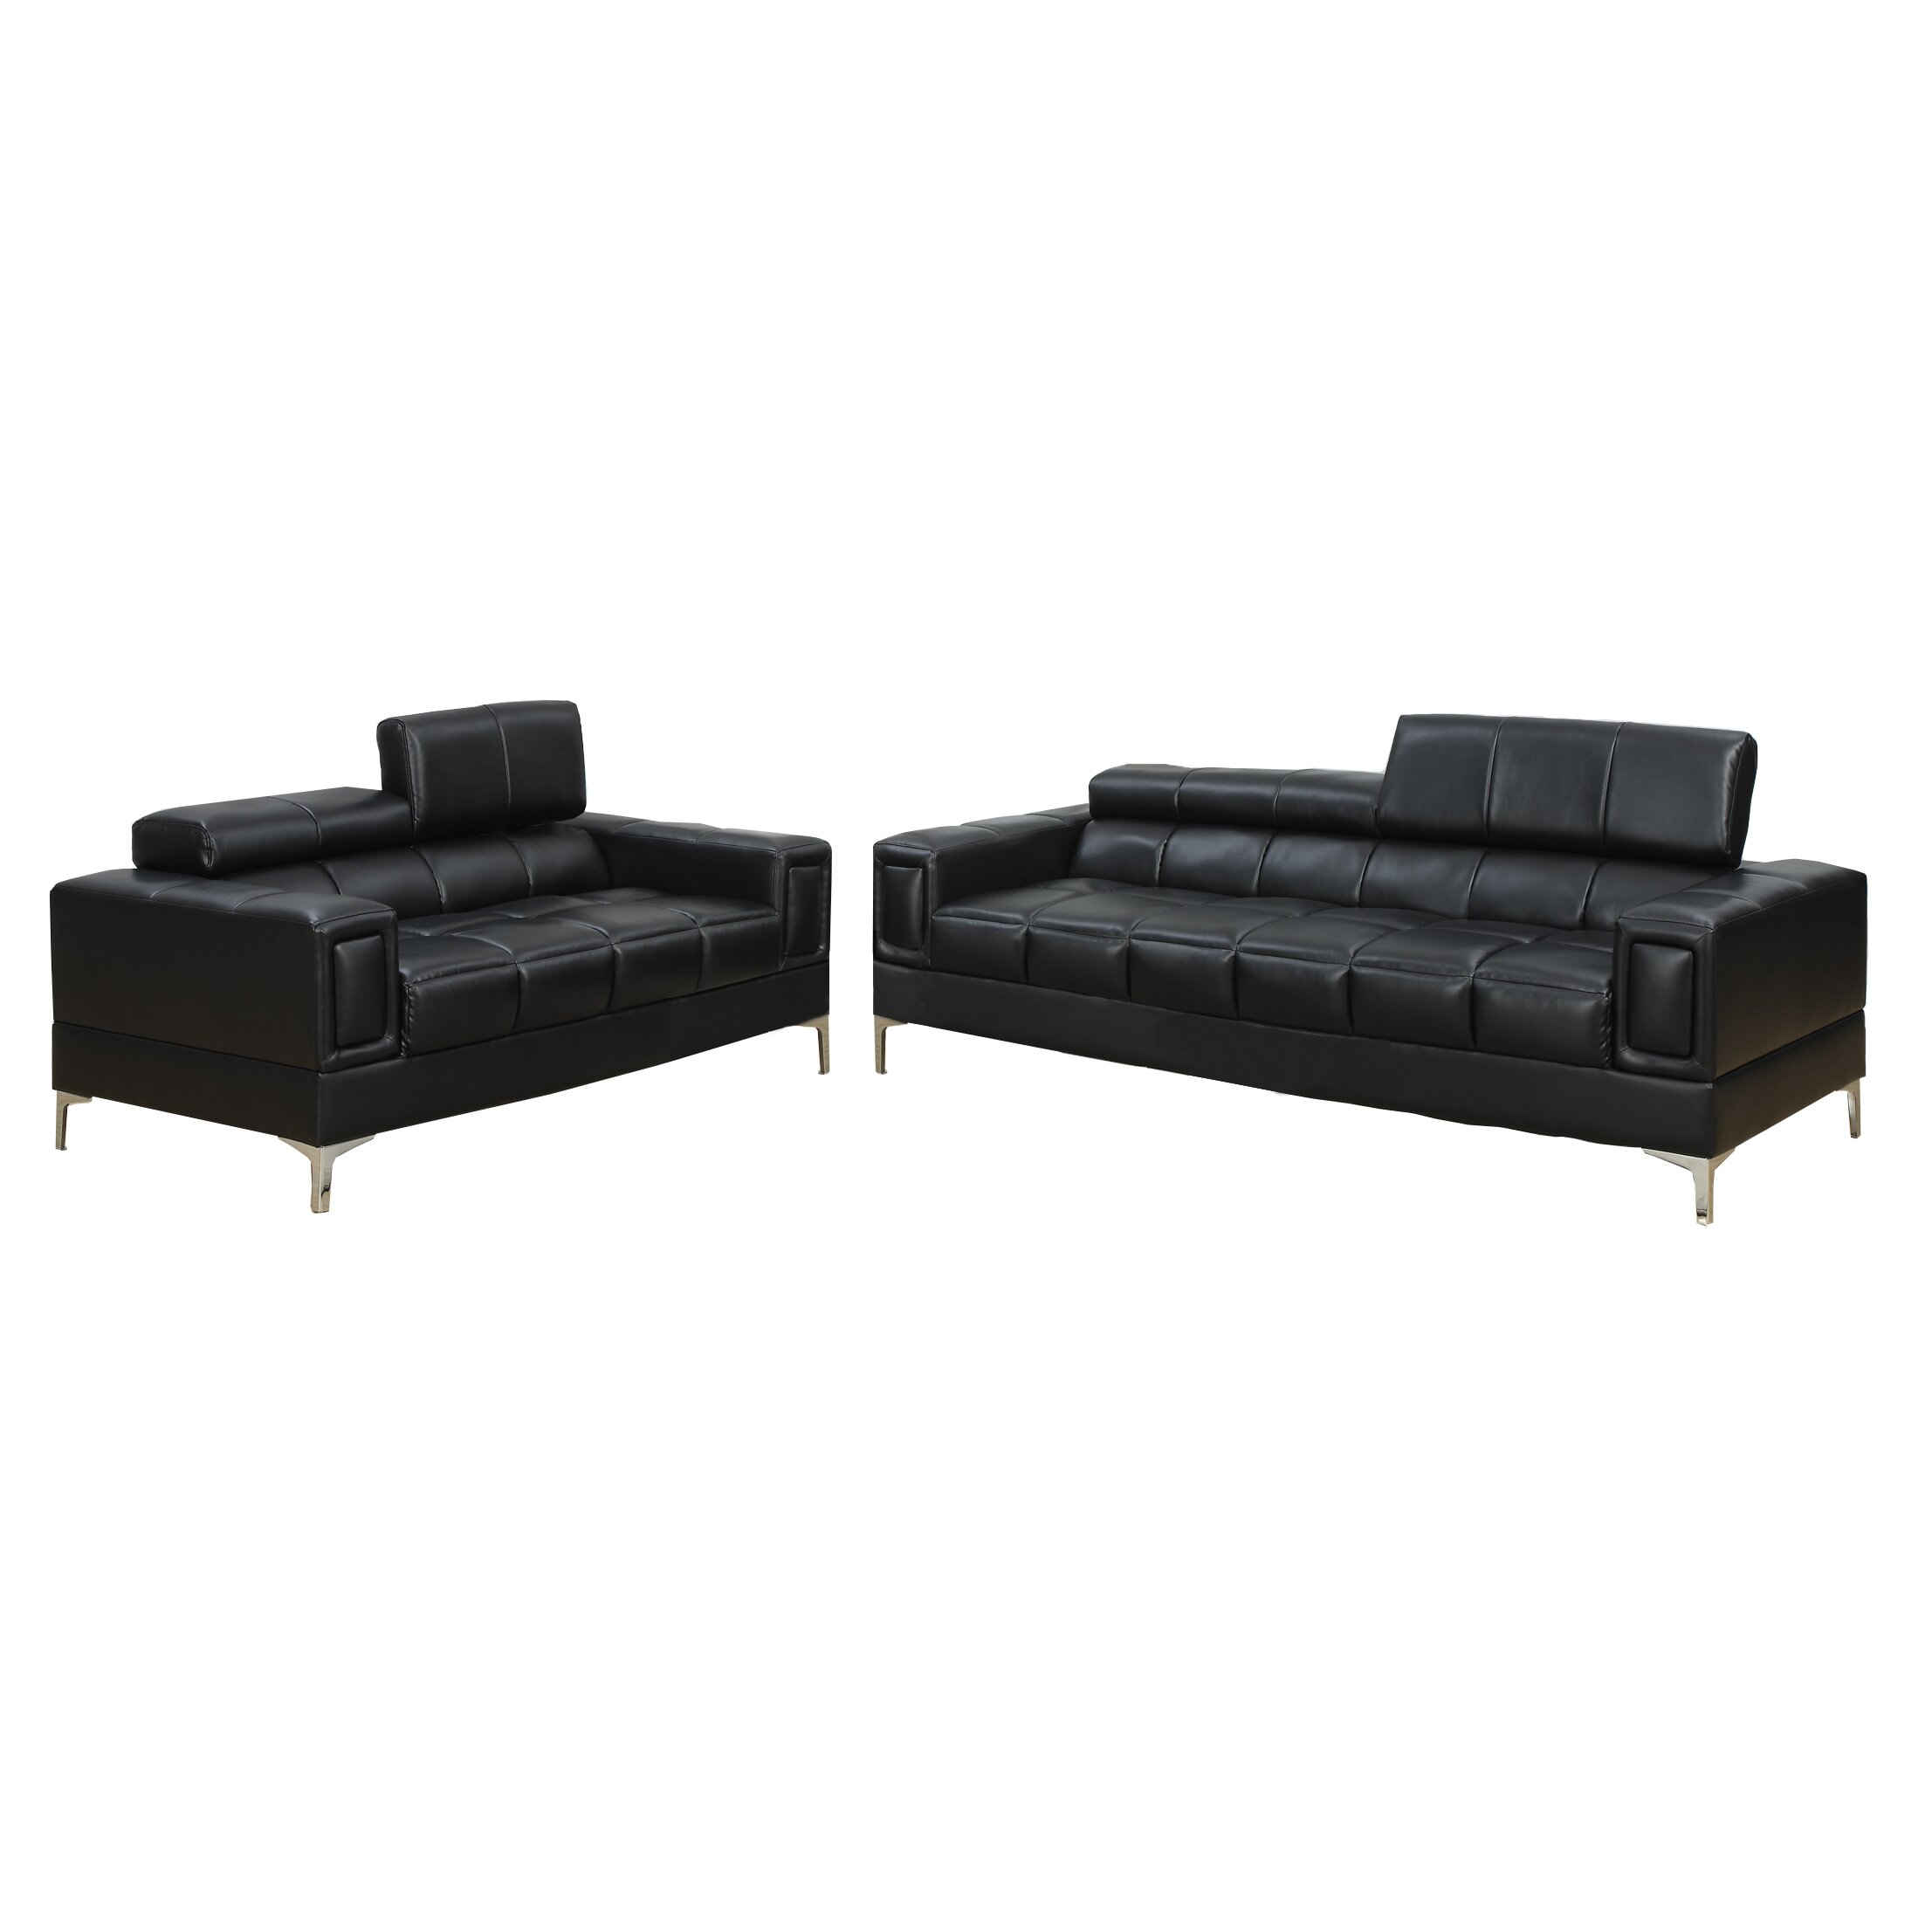 Poundex bobkona sierra 2 piece sofa and loveseat set for 2 piece furniture set